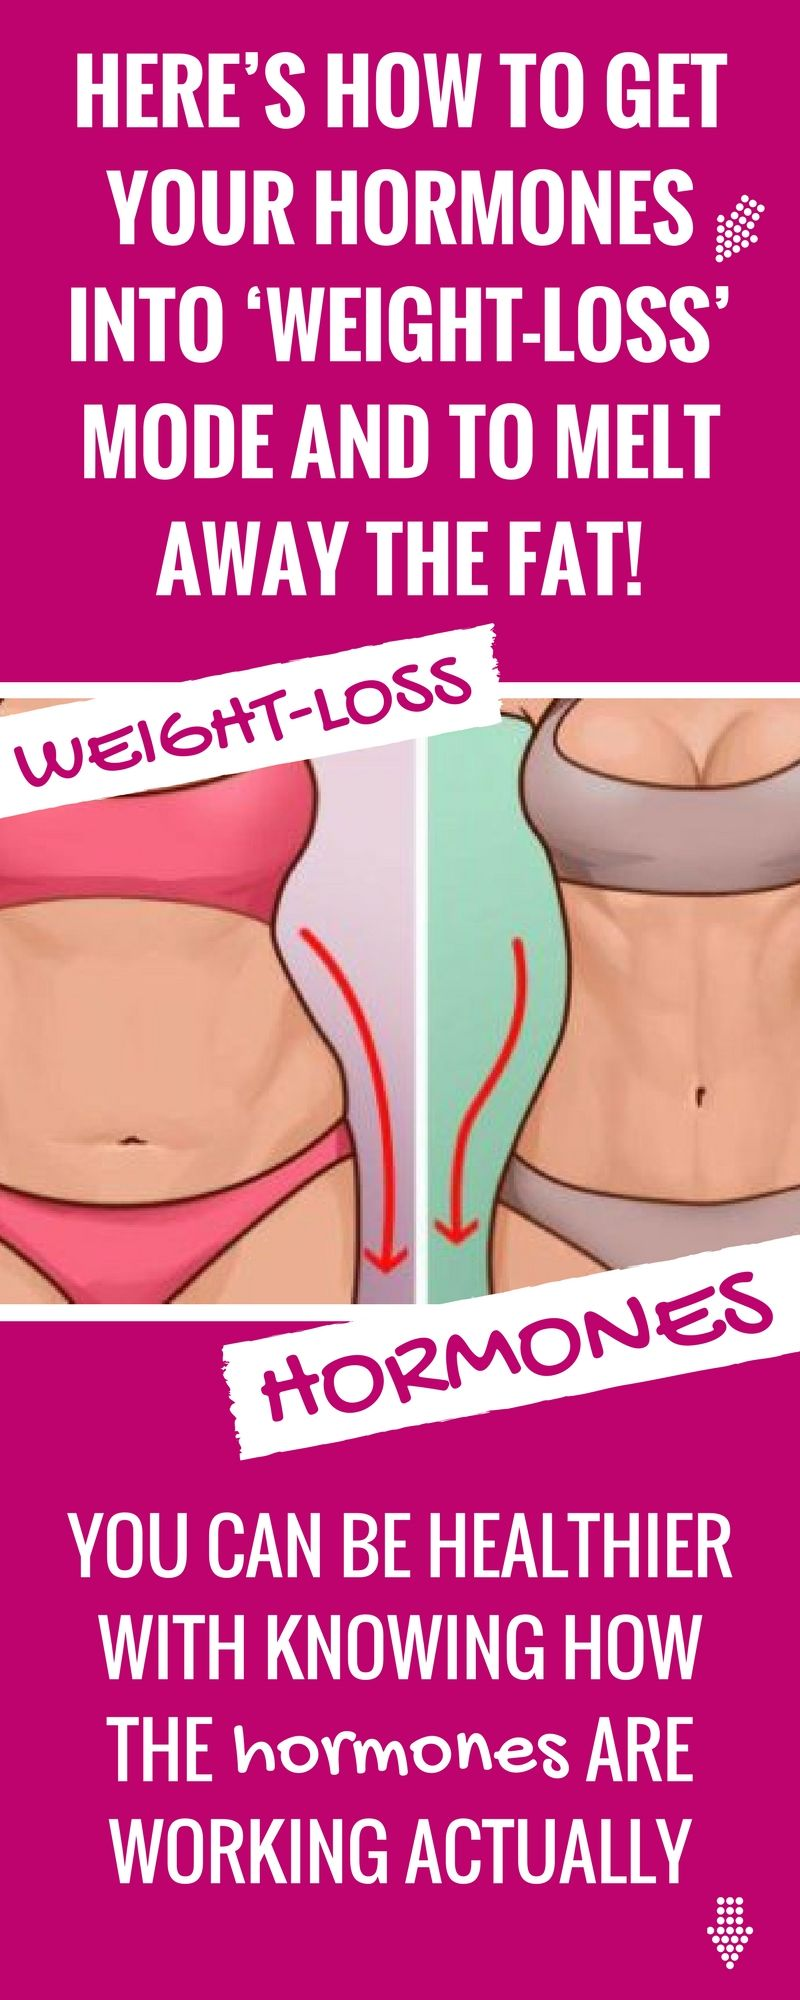 The functions of the body are controlled by the hormones. You can be healthier with knowing how the hormones are working actually.